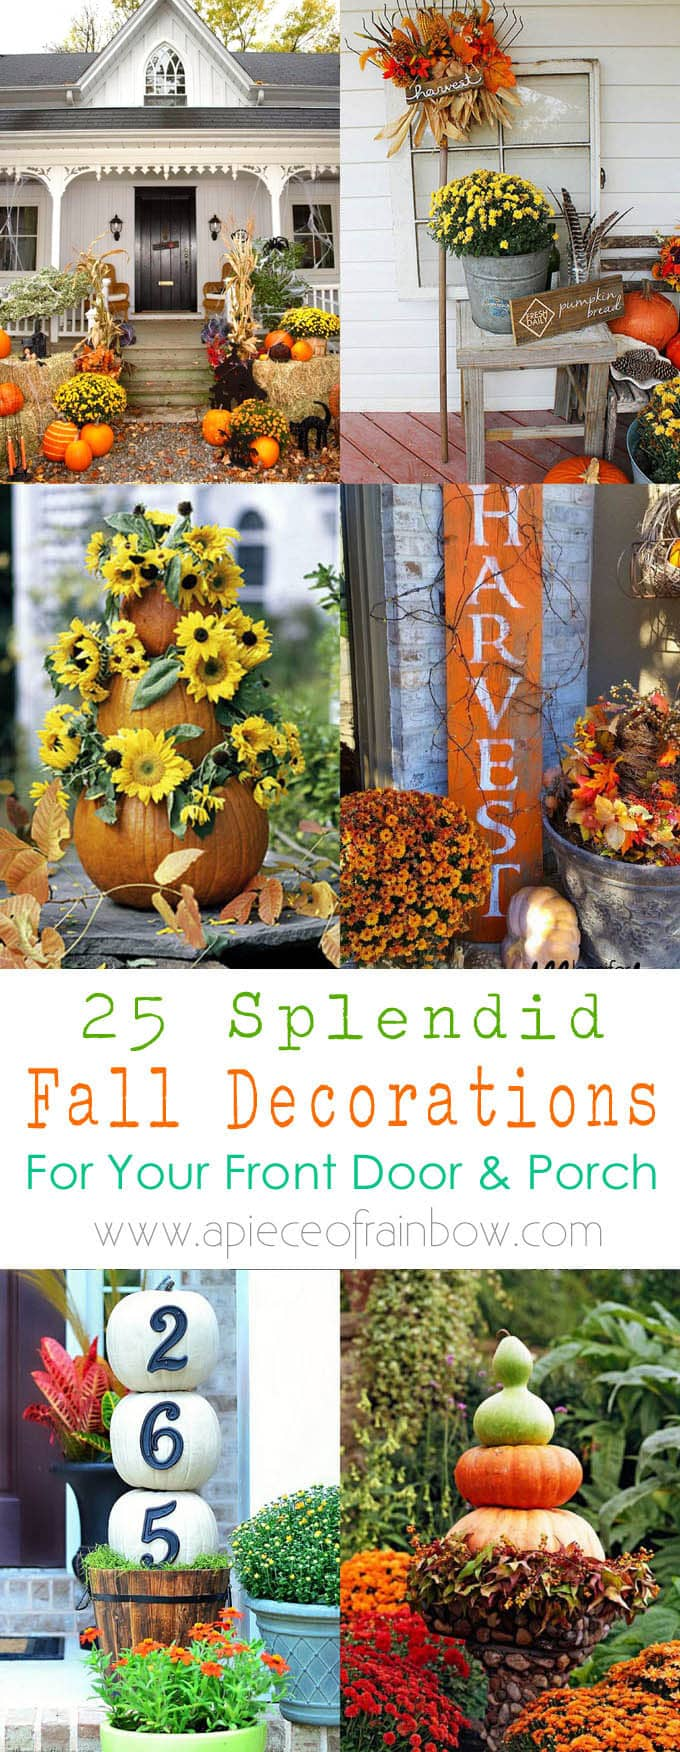 25 Splendid DIY Fall Outdoor Decorations - A Piece Of Rainbow on Fall Backyard Decorating Ideas id=74772